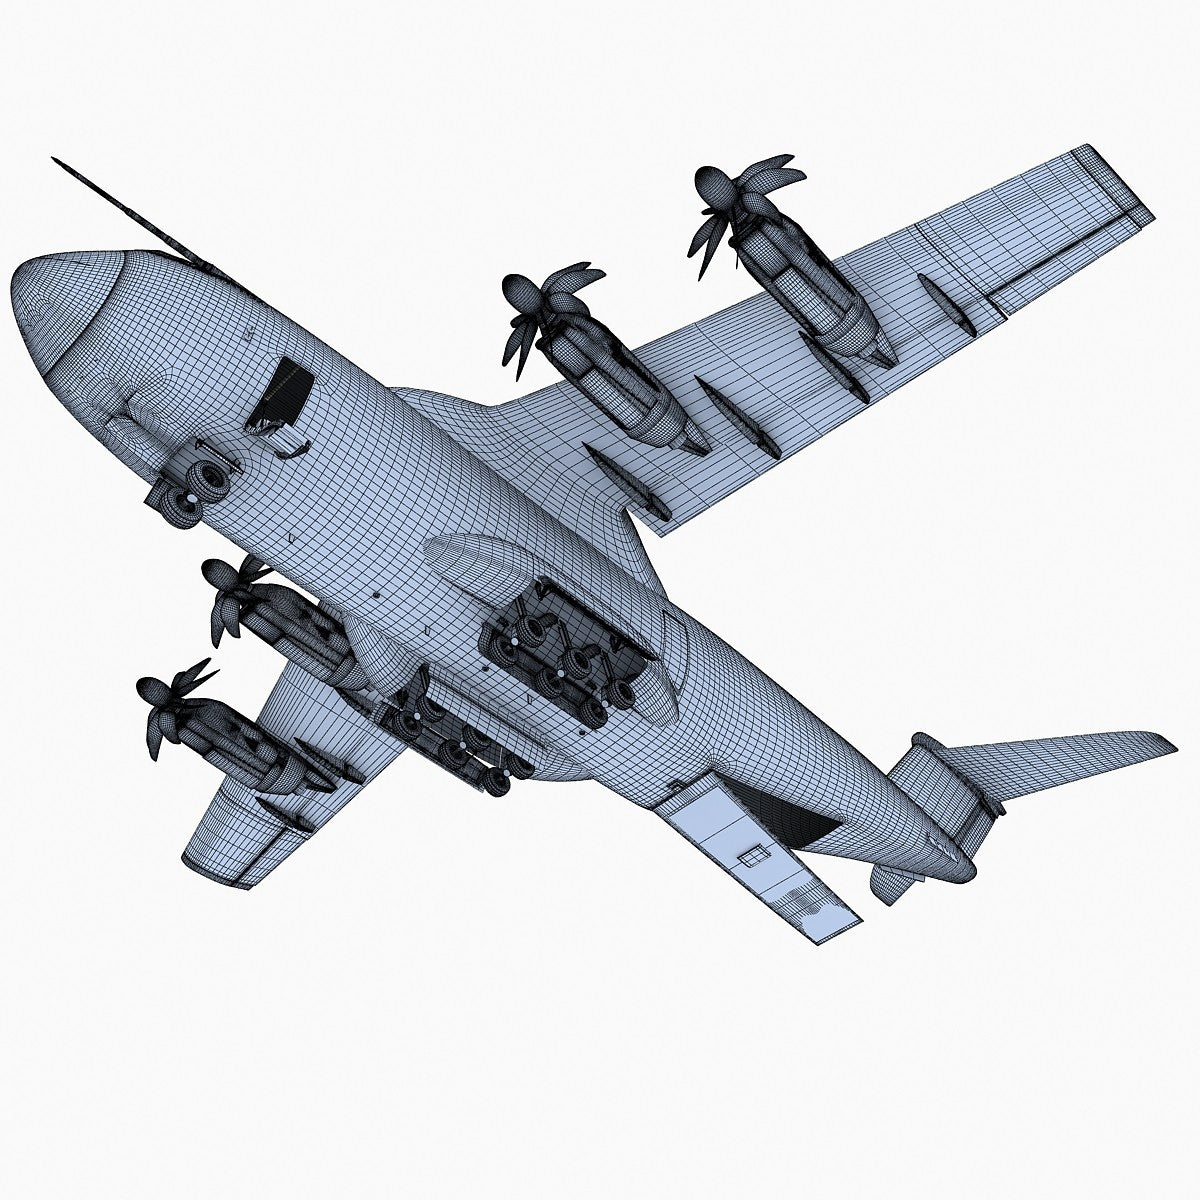 3D Military Aircraft Models